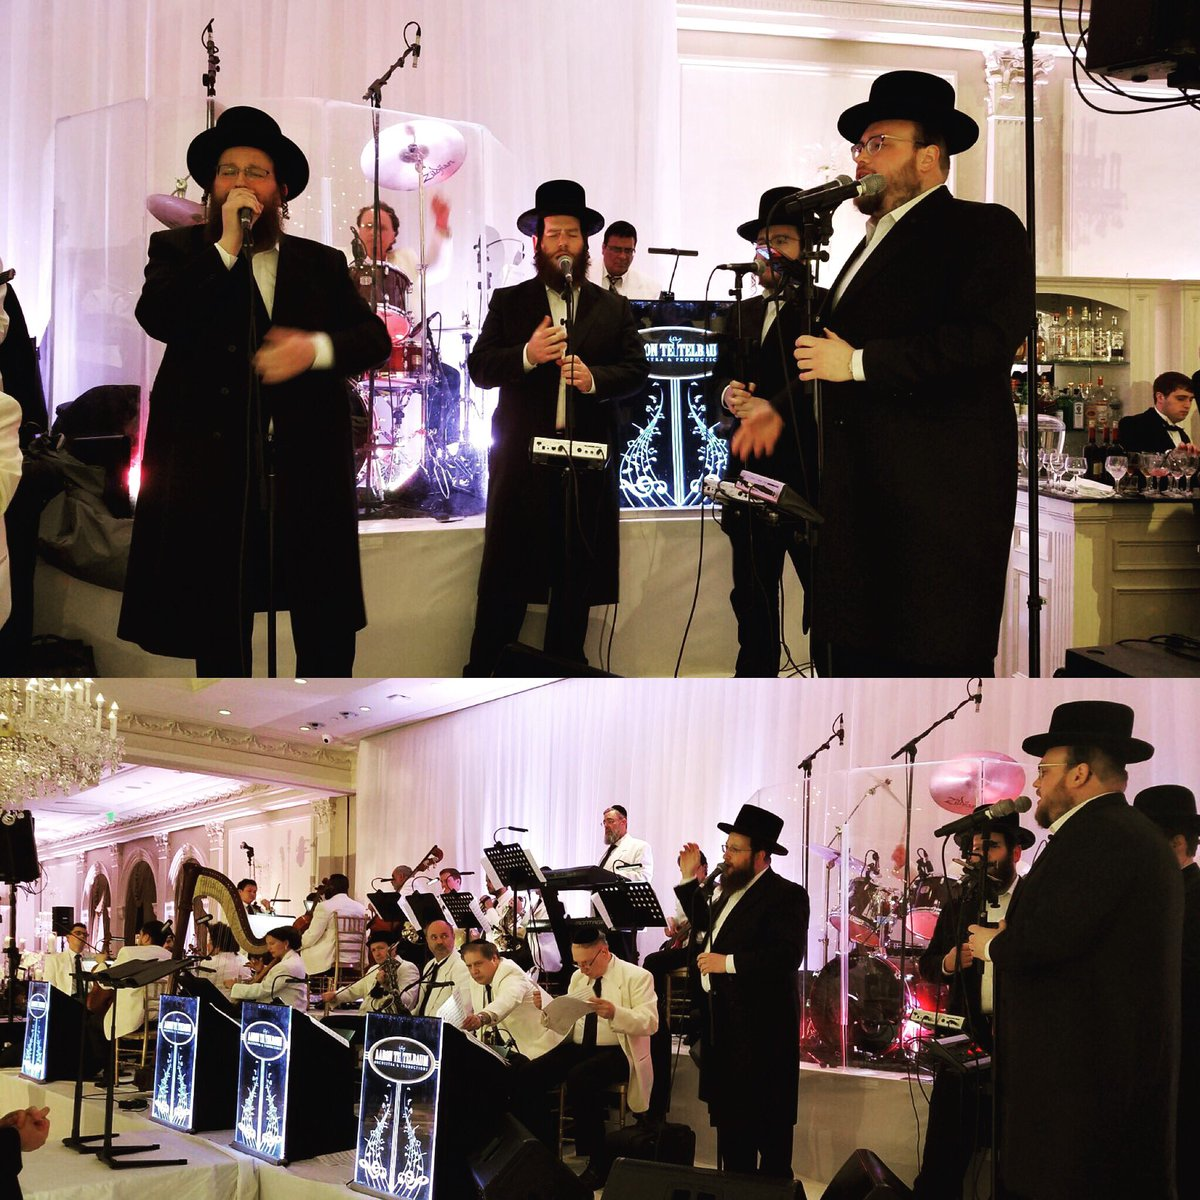 Tonights wedding at #TheRockleigh was something else! With @shloimedaskal and the @aaronteitelbaum #orchestra <br>http://pic.twitter.com/7OHPgDuSuF